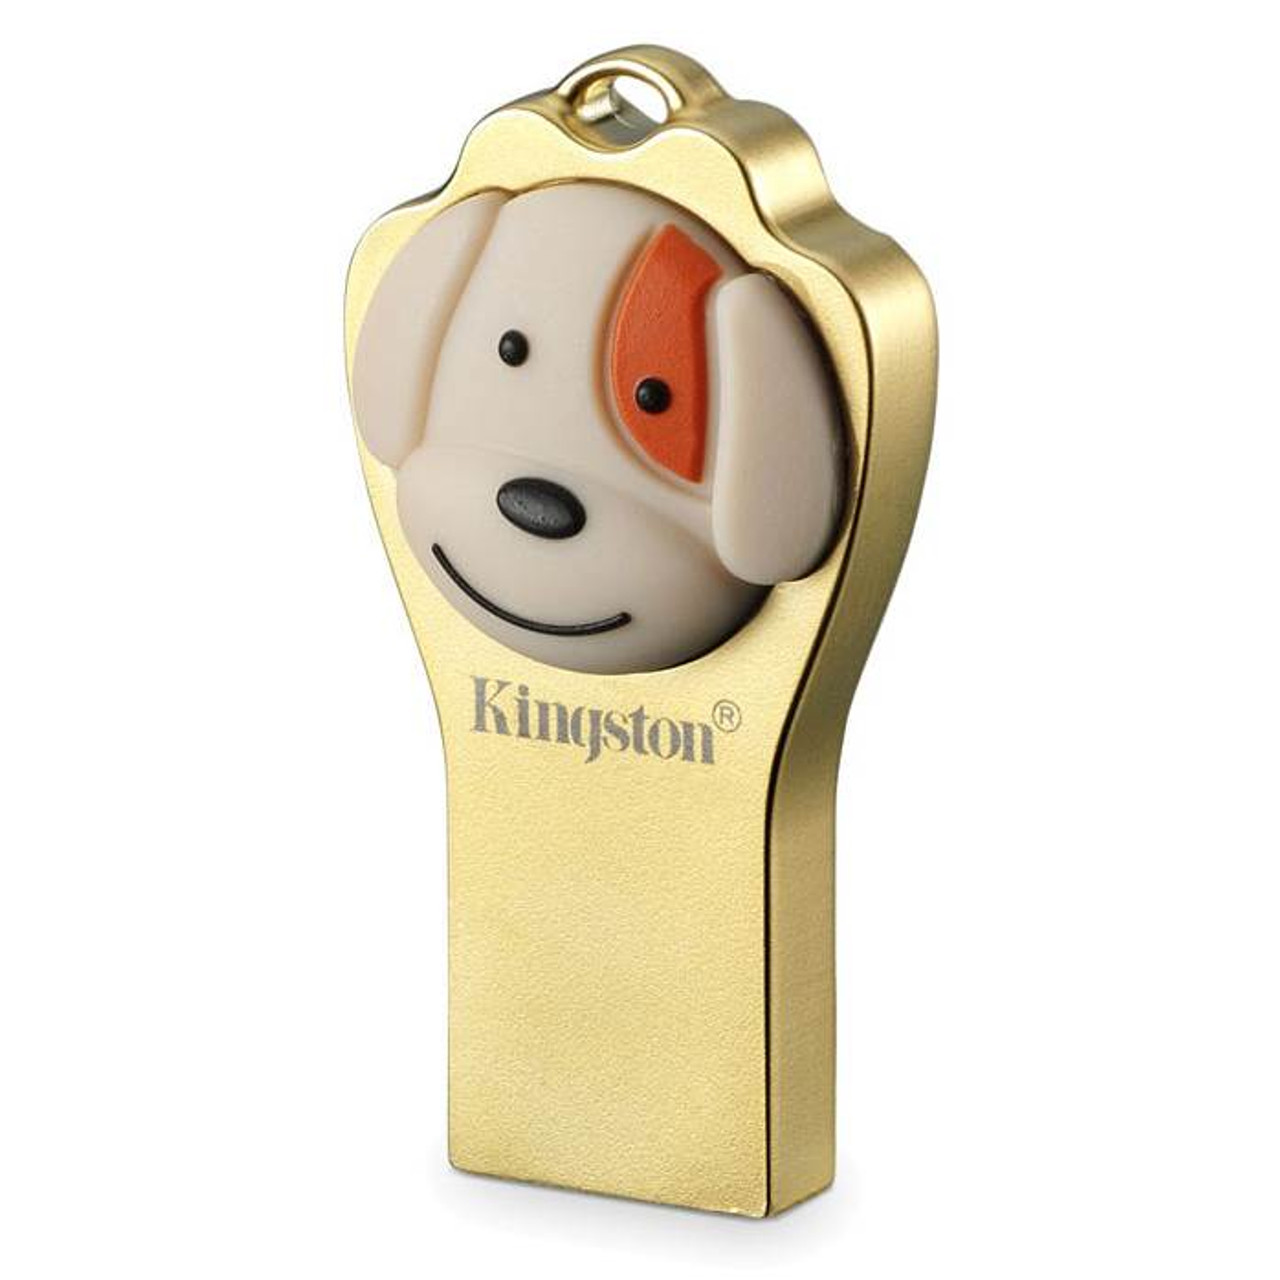 Image for Kingston Puppy 32GB USB 3.0 Flash Drive CX Computer Superstore